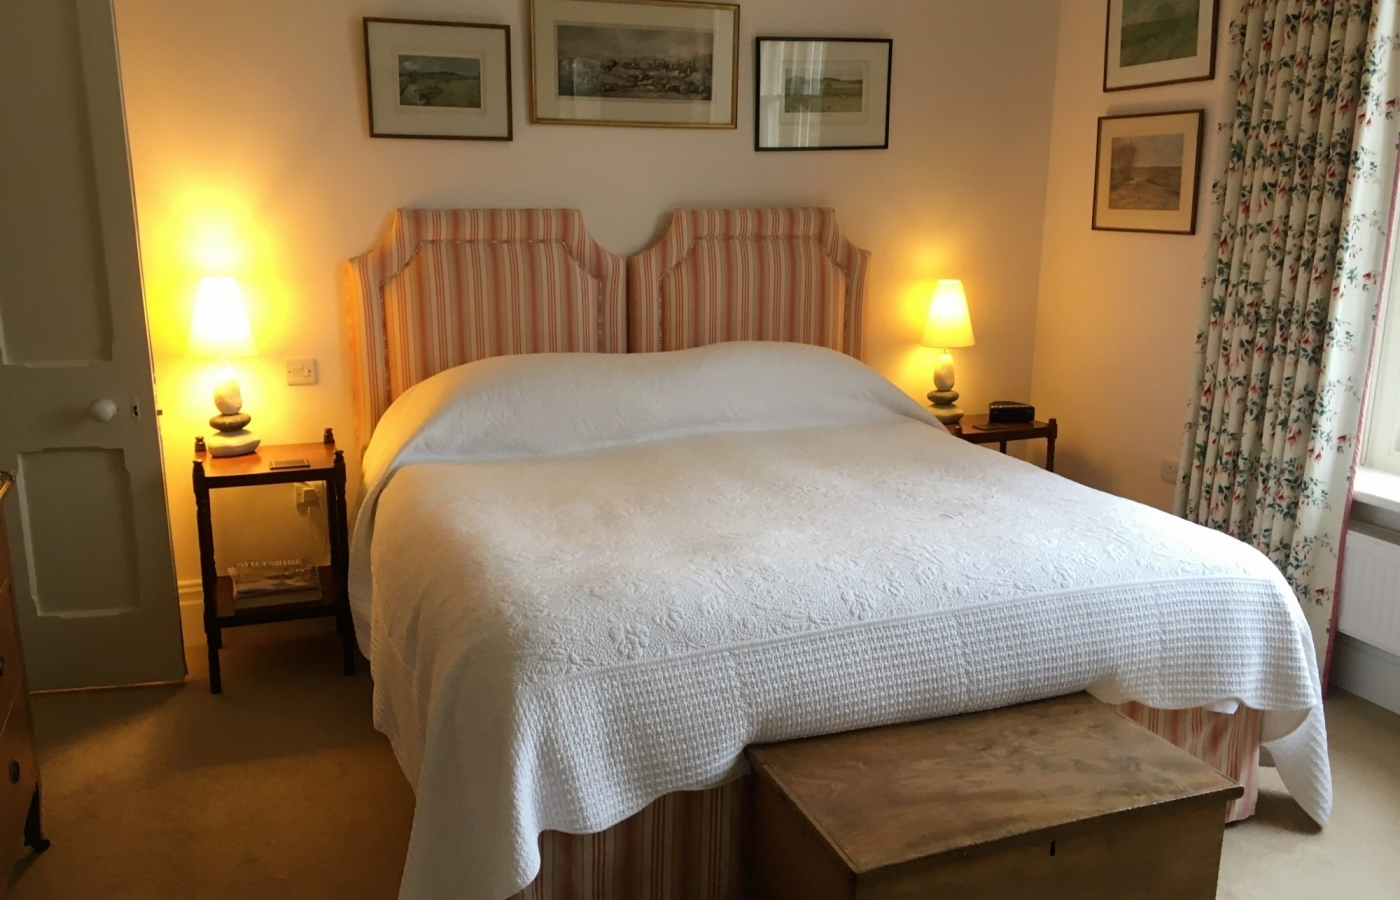 Need a place to stay for the weekend? Check our special offers